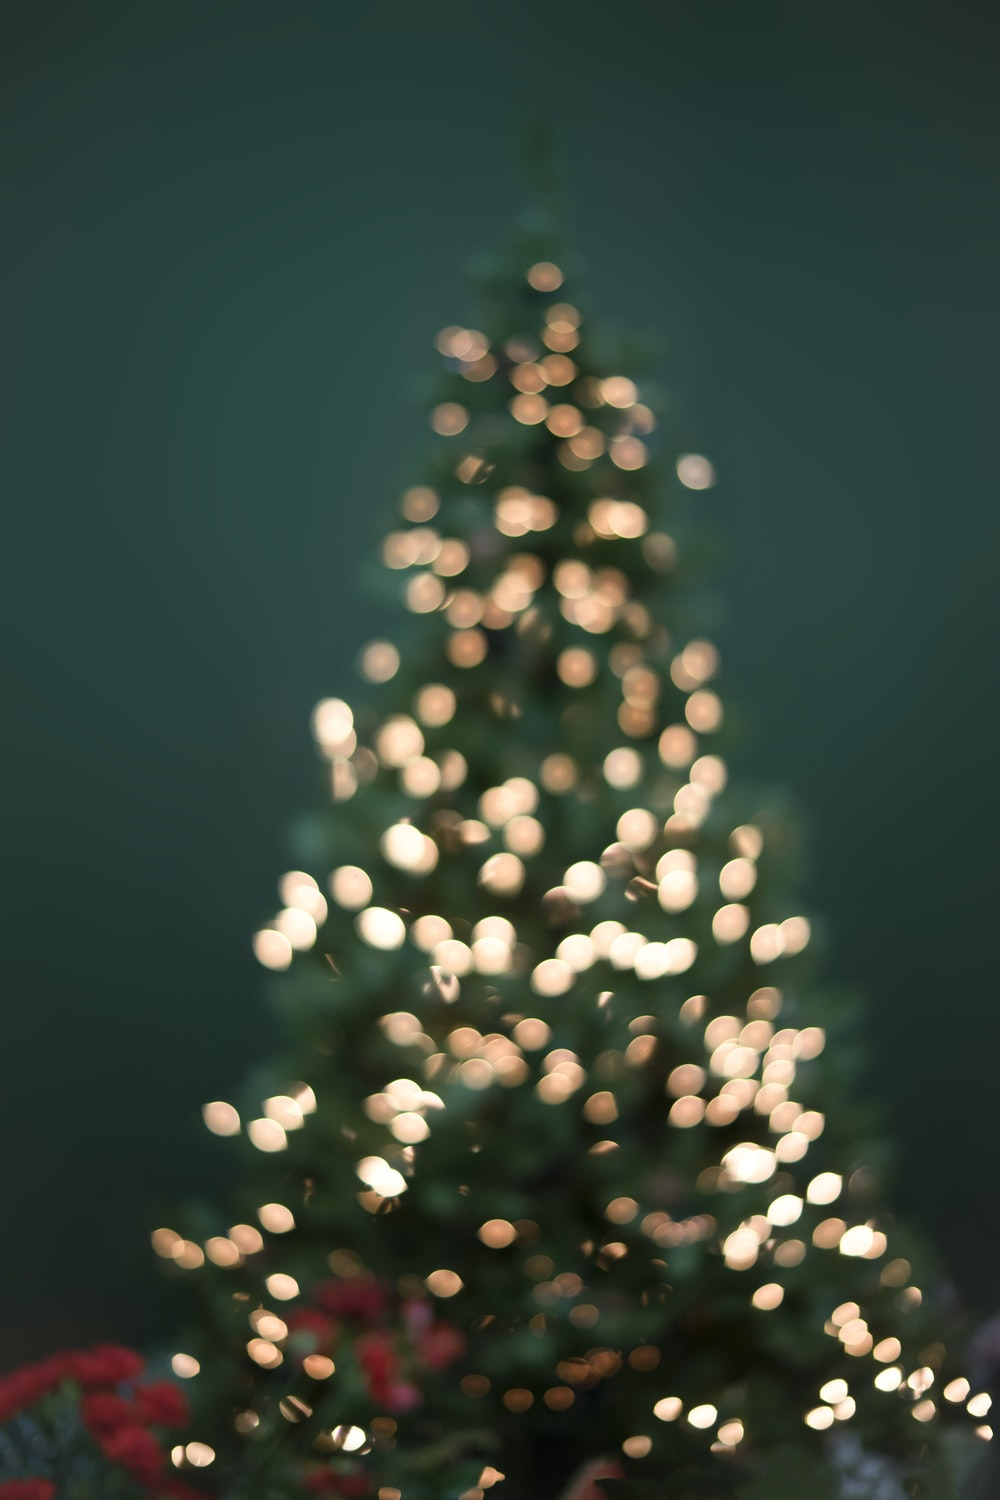 1000x1500 - Christmas Trees Backgrounds 5